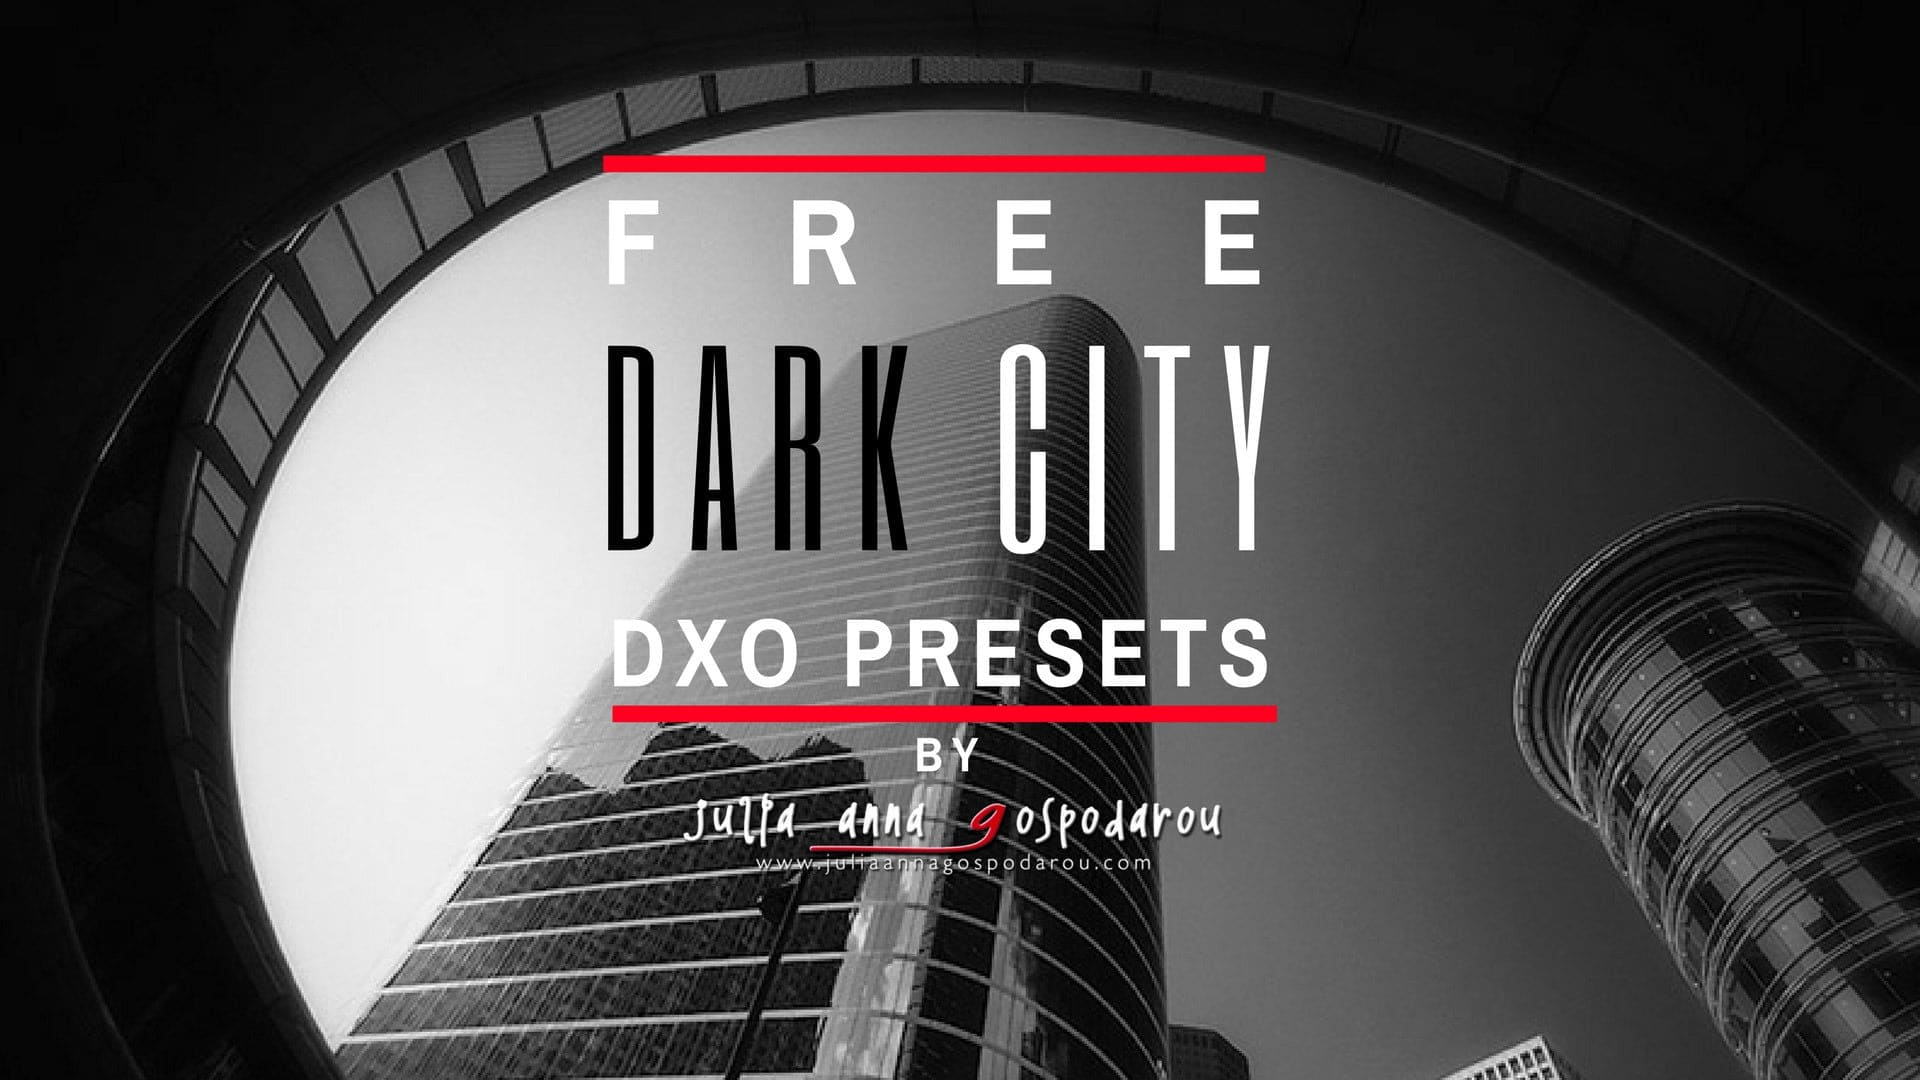 This is the NEW FREE extended 2021 version of the original fine art DxO Preset Series Dark City, created by Julia Anna Gospodarou. Μany fine art photographers have used these presets and they created outstanding fine art photography with them. I am using them myself extensively in my work. Get them FREE from the link above.